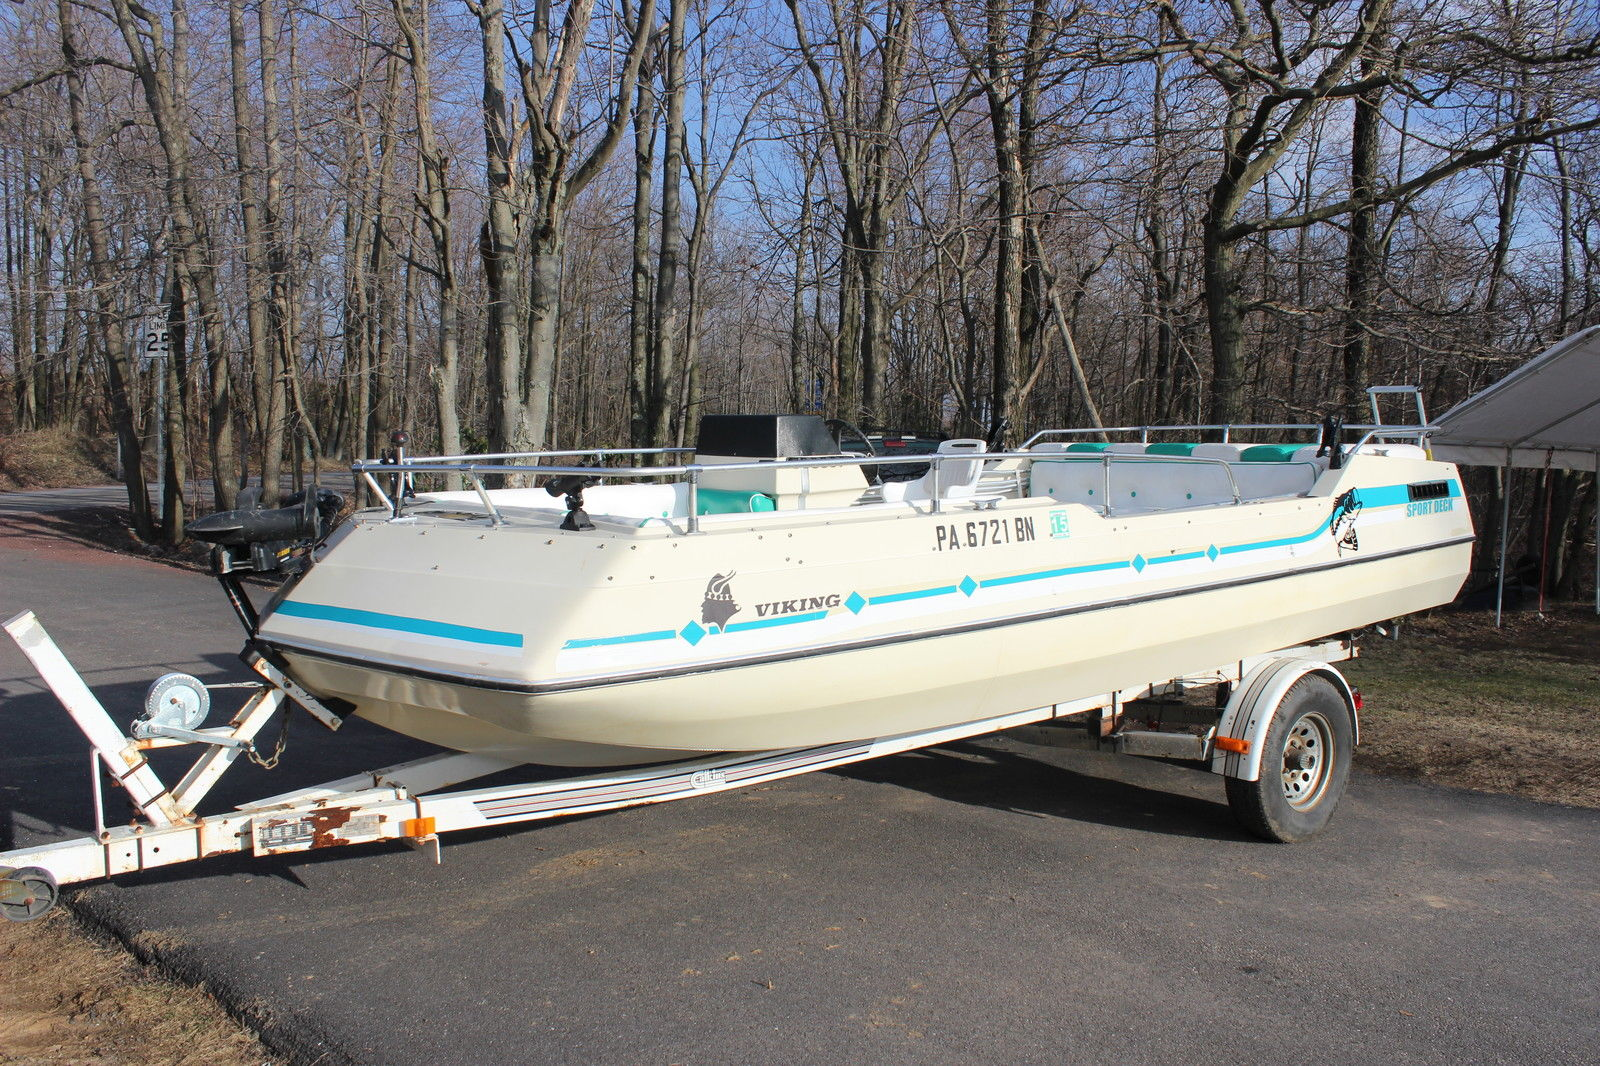 Viking Deck Boat Mercruiser Chevrolet V8 Boat For Sale